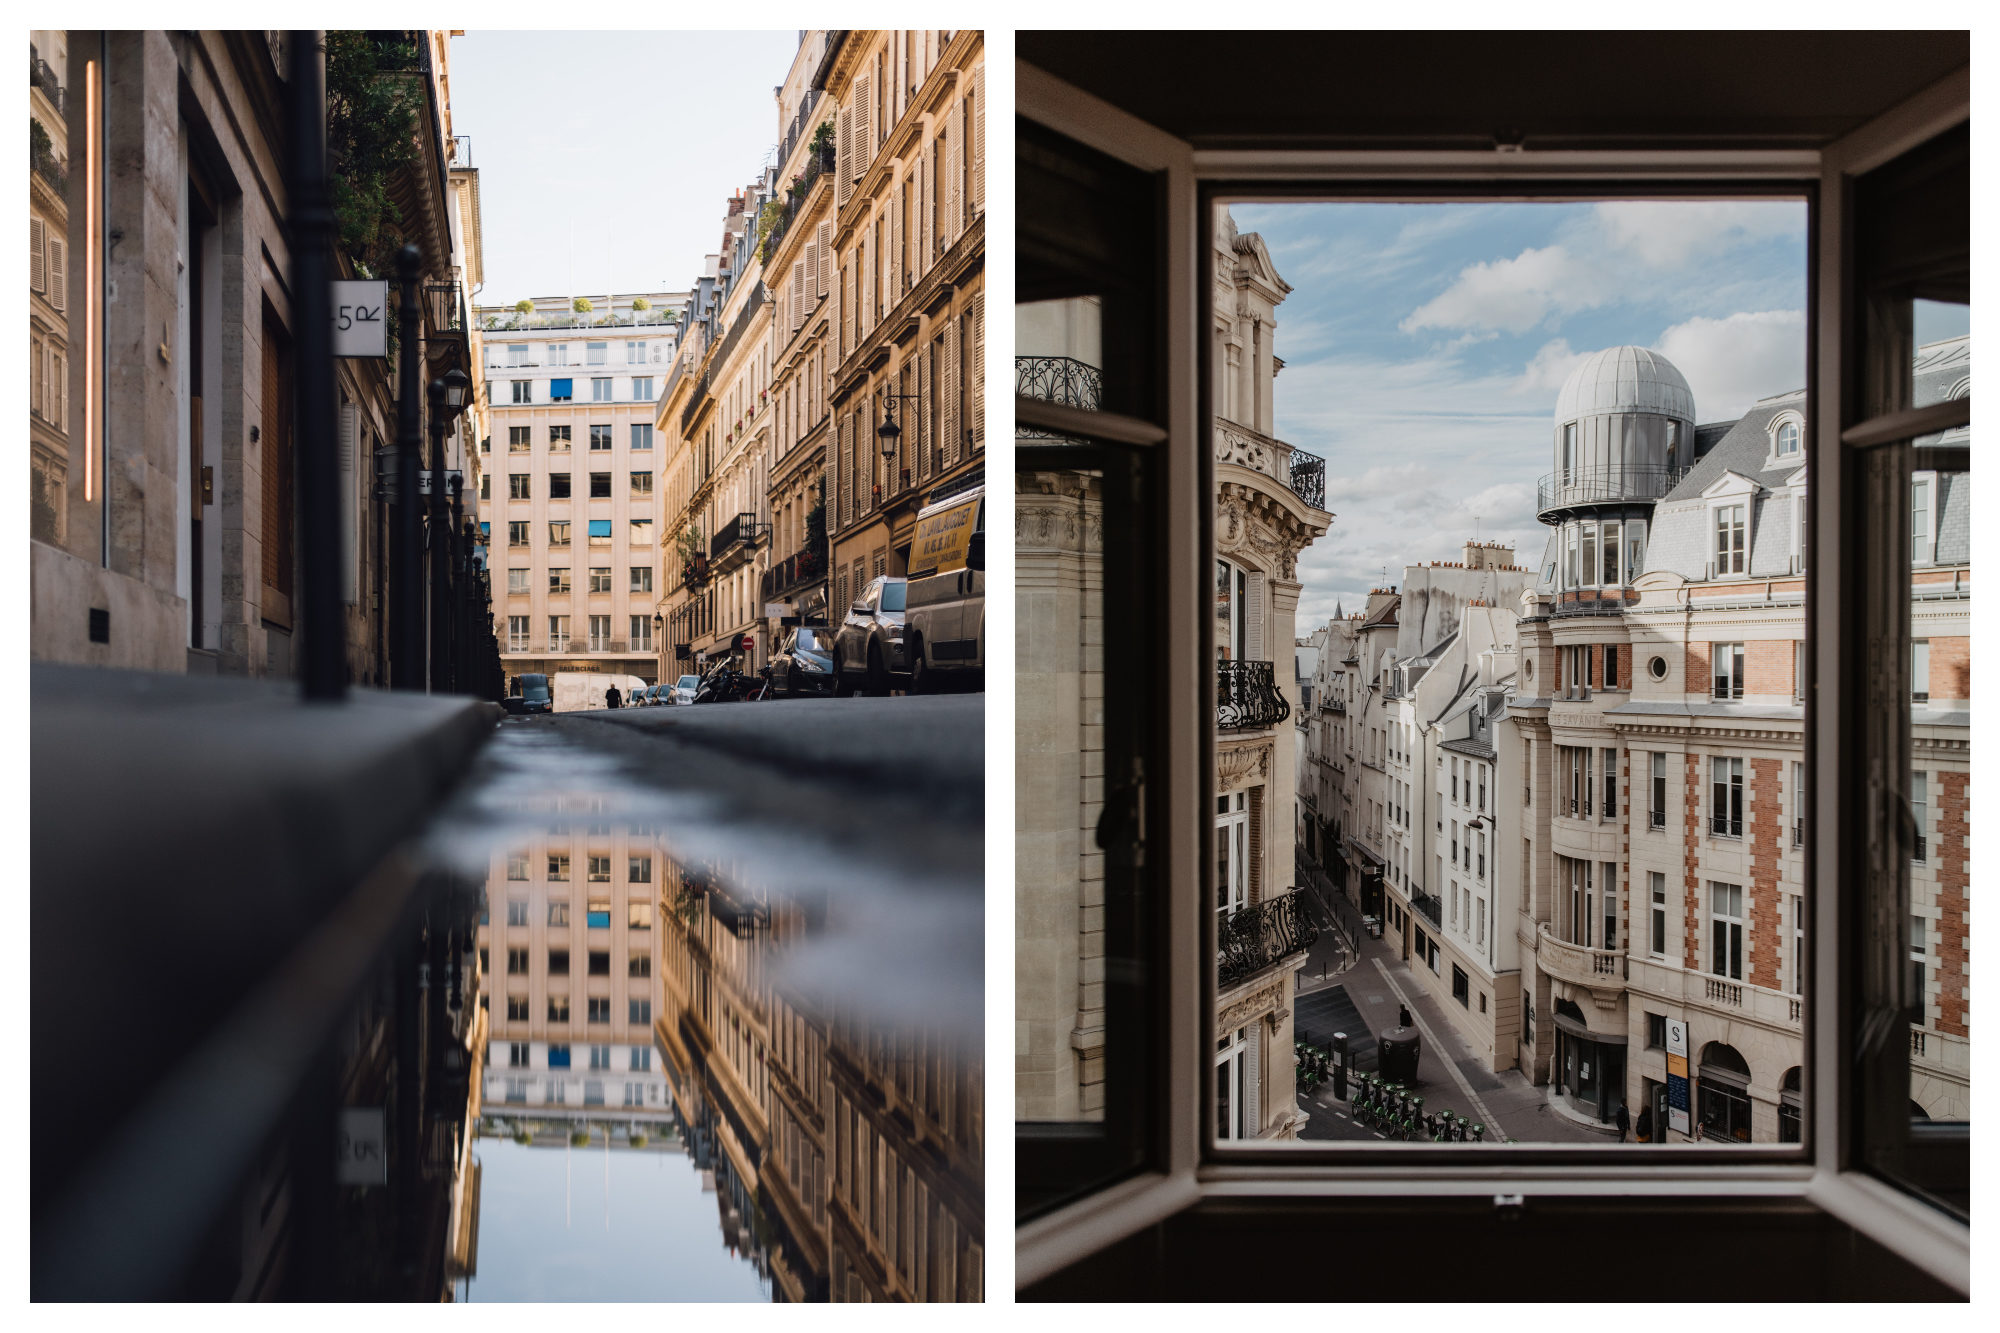 The reflection of a Parisian stone building in a puddle (left). The view of a street lined by honey-colored stone buildings in Paris through an open window (right).